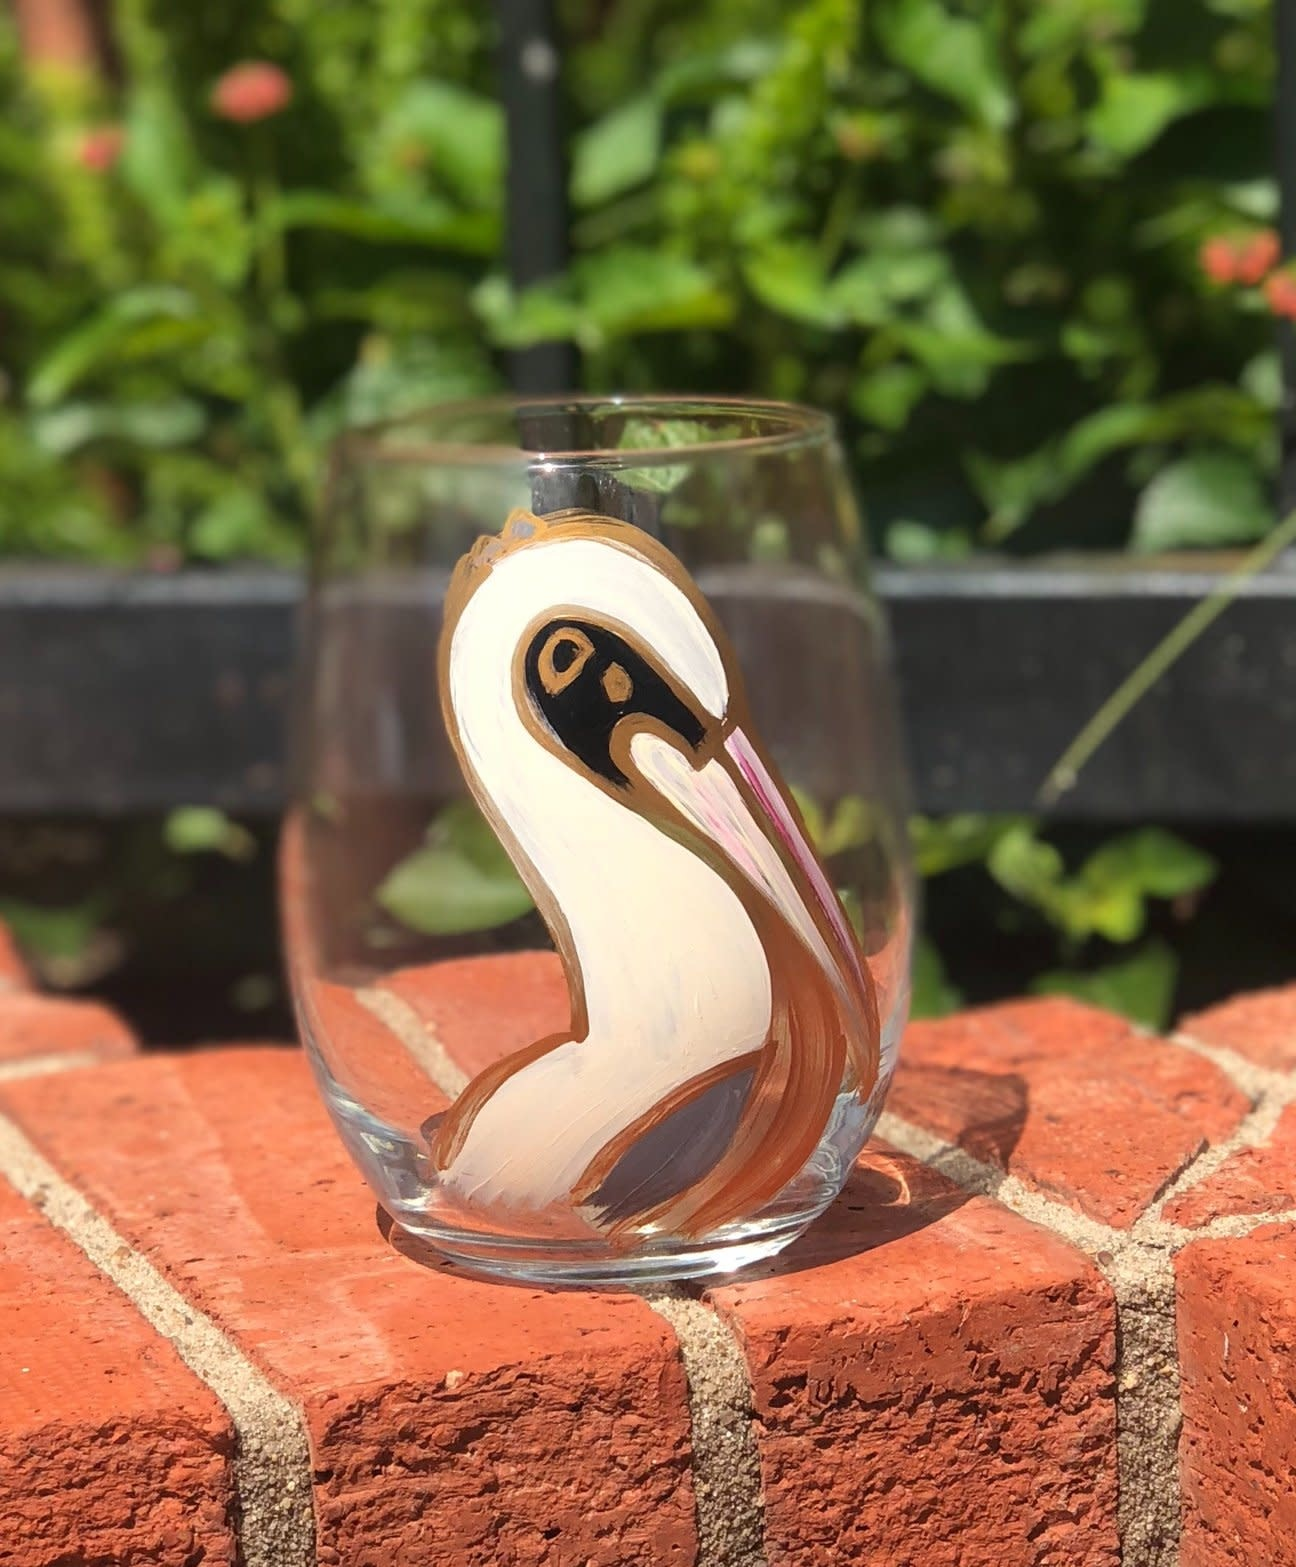 318 Art & Garden Fall Pelican Stemless Wine Glass